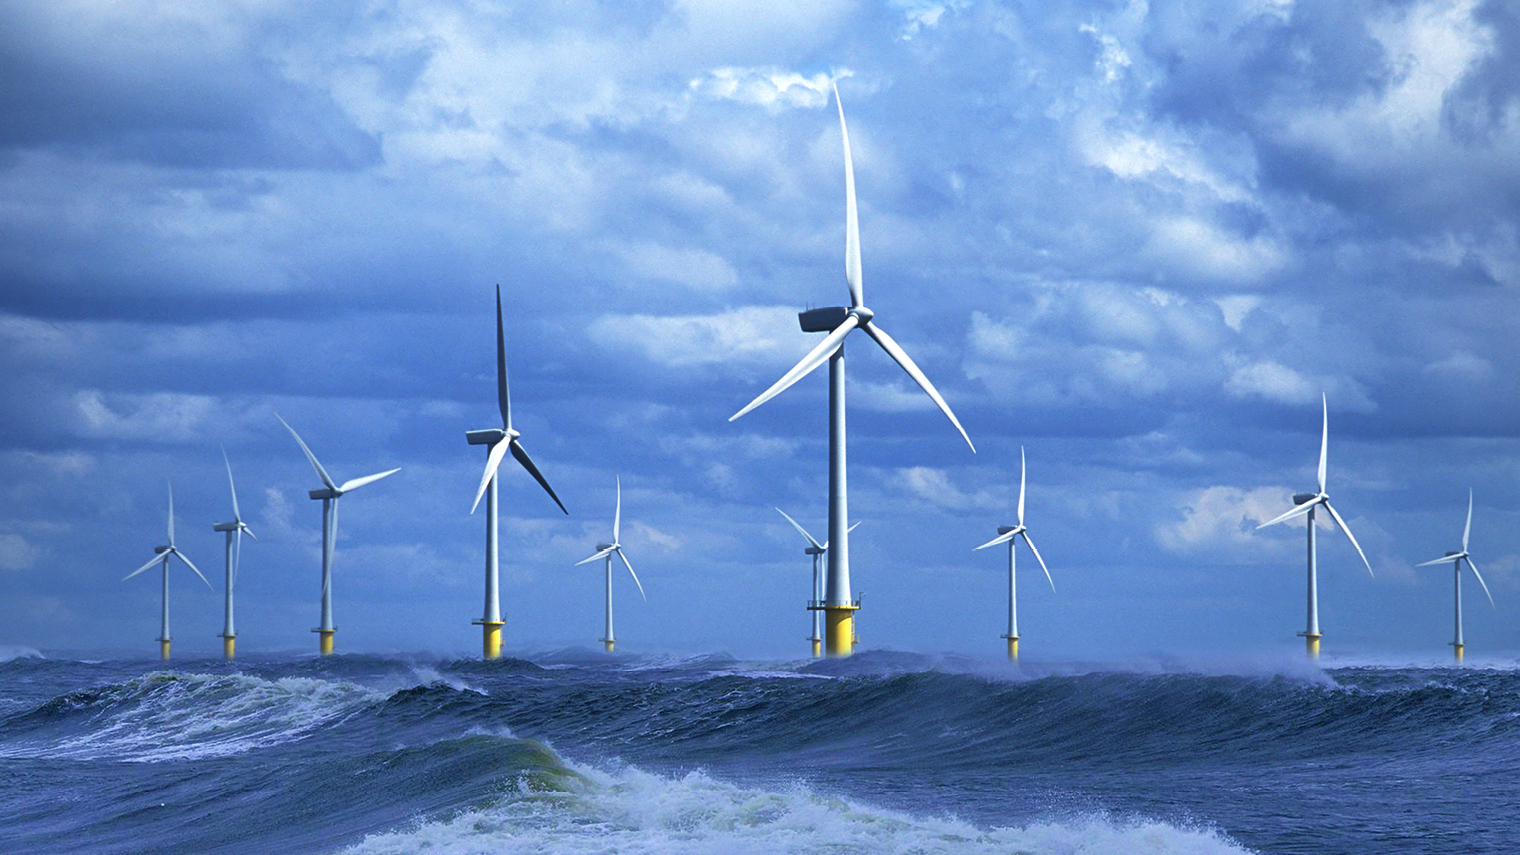 Offshore wind is on the rise, but what does the future hold?